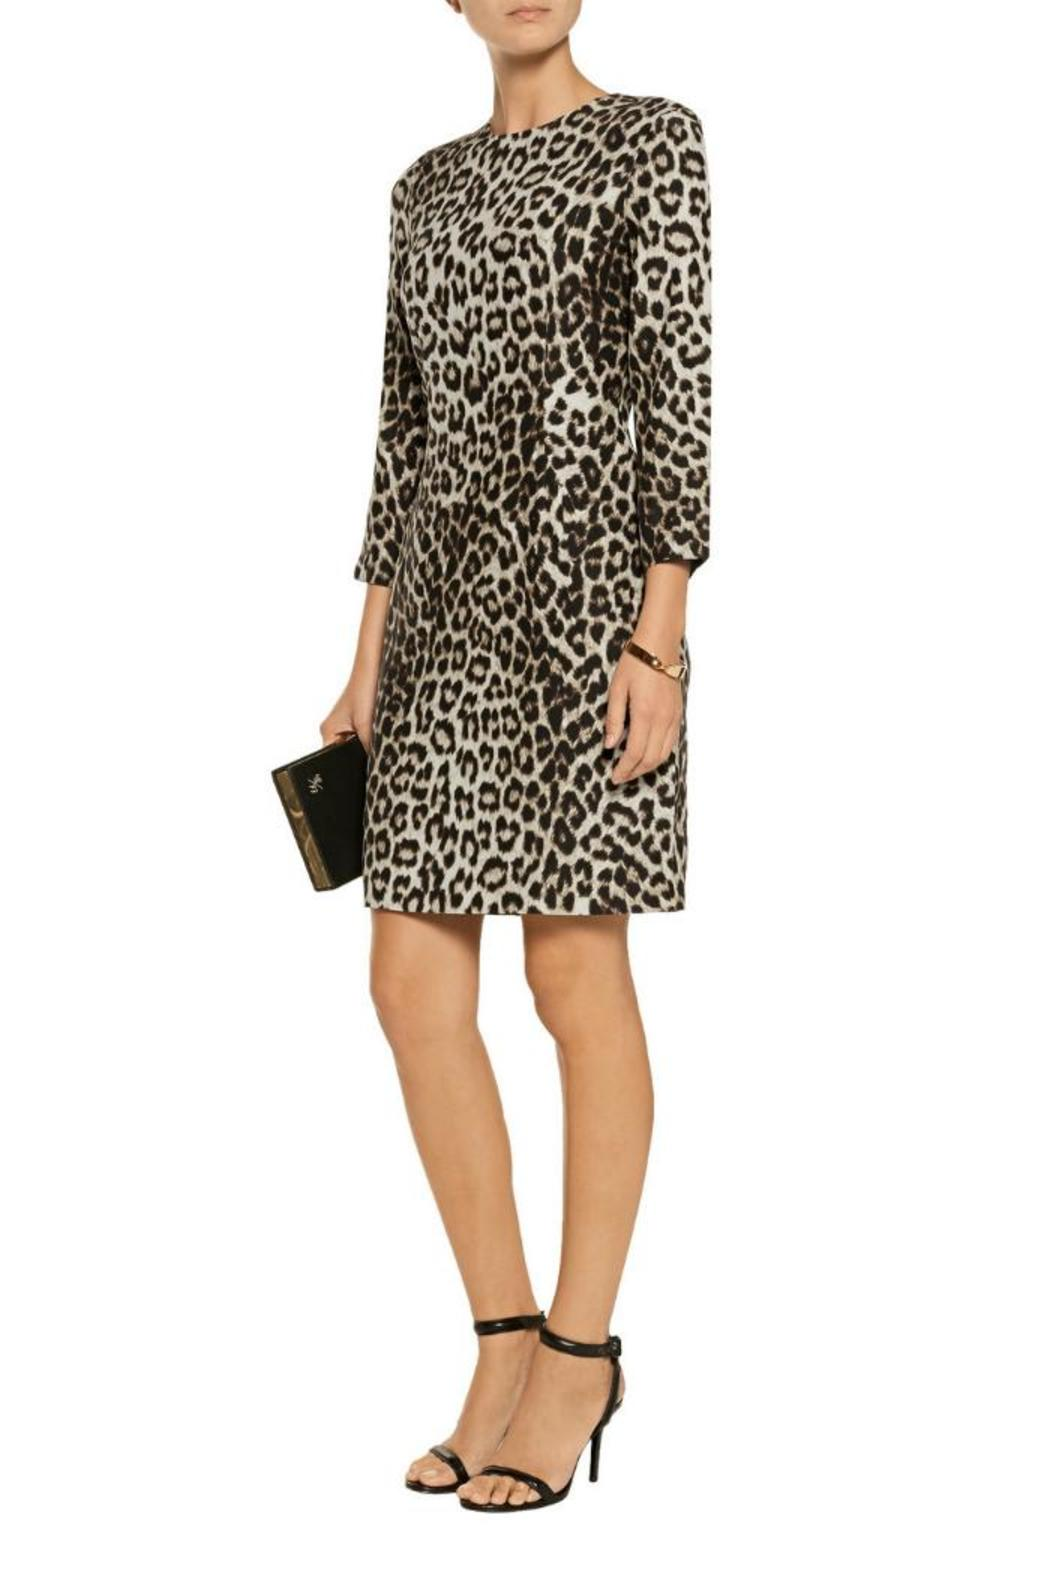 Rag & Bone Short Leopard Dress - Main Image